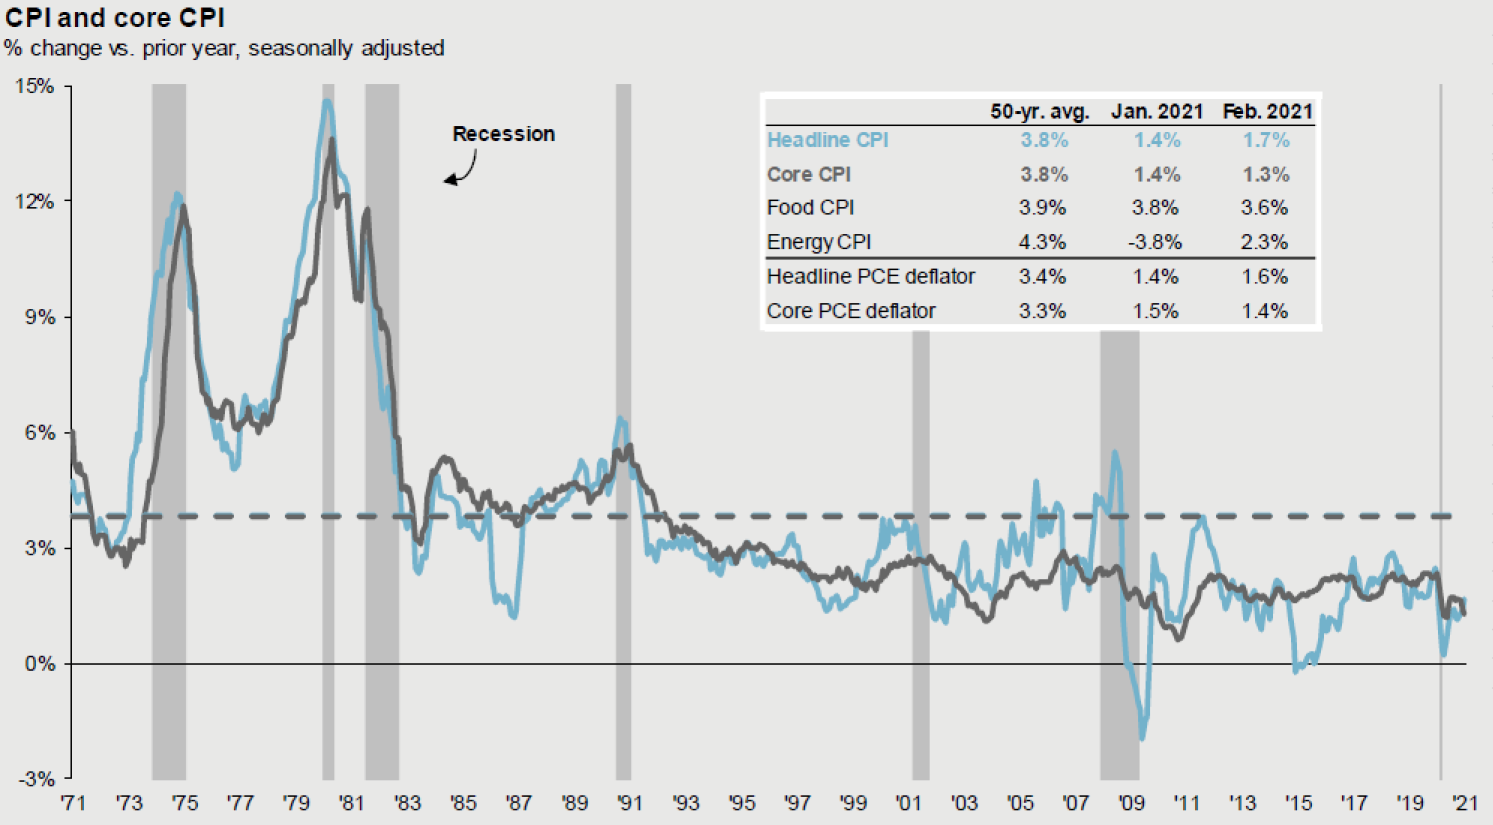 The history of inflation using the Consumer Price Index (click on image to expand)